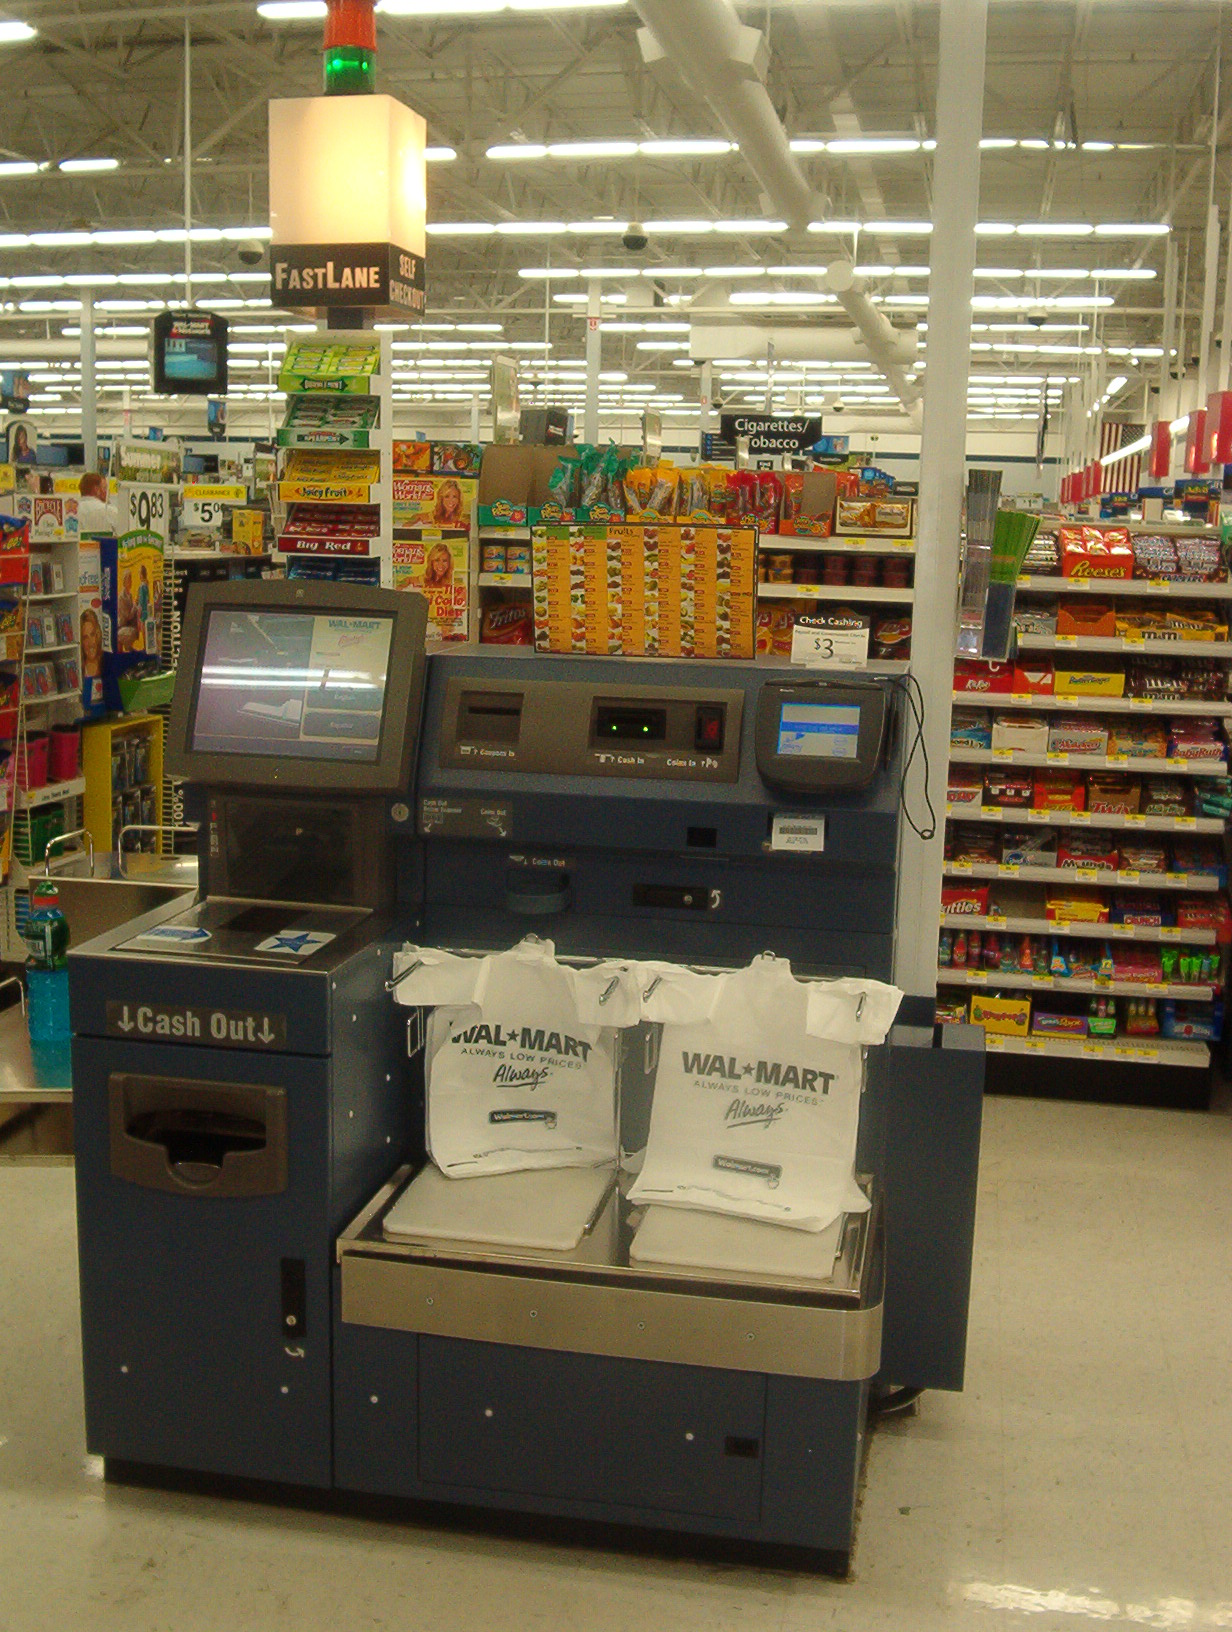 File:Wal Mart Fast Lane.jpg - Wikimedia Commons